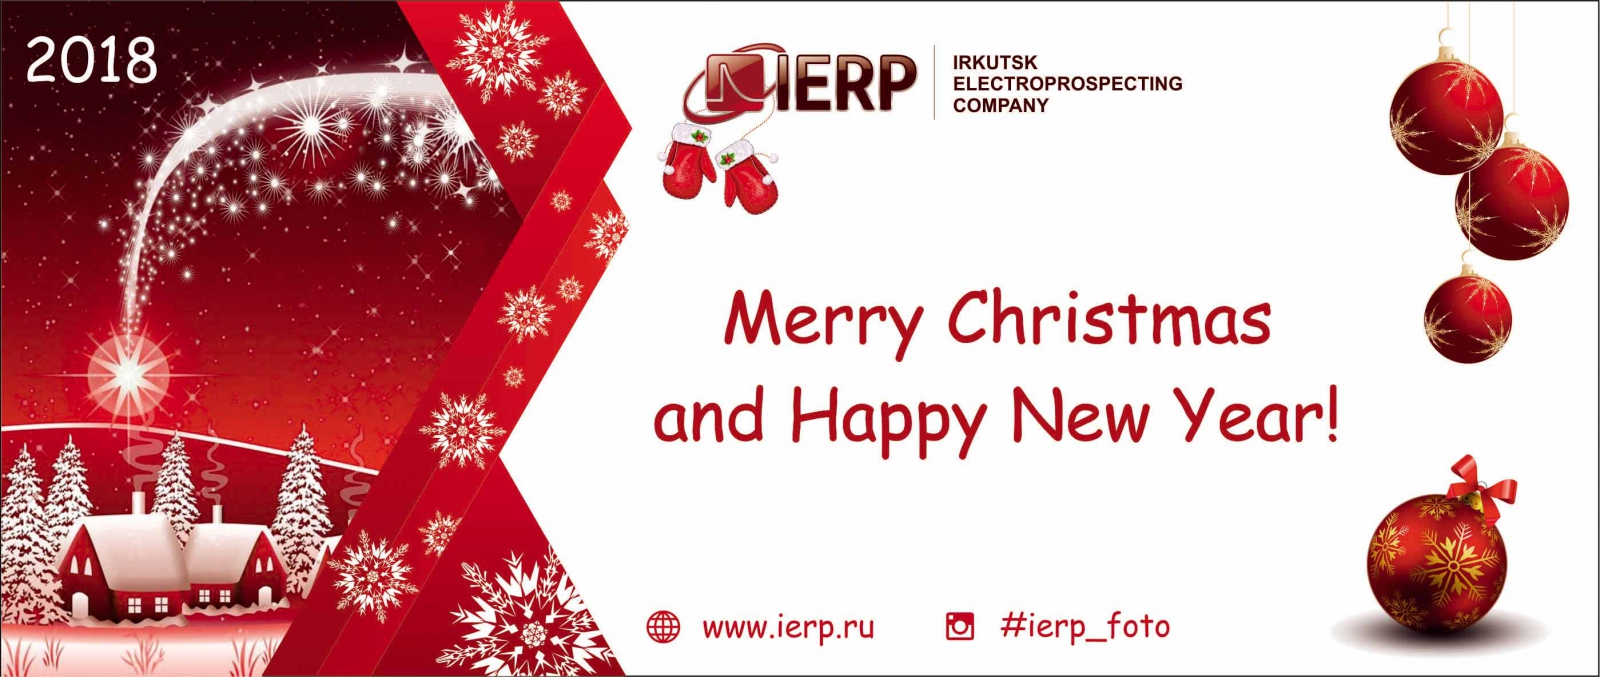 With Christmas Greetings And All Good Wishes For The New 2018 Year